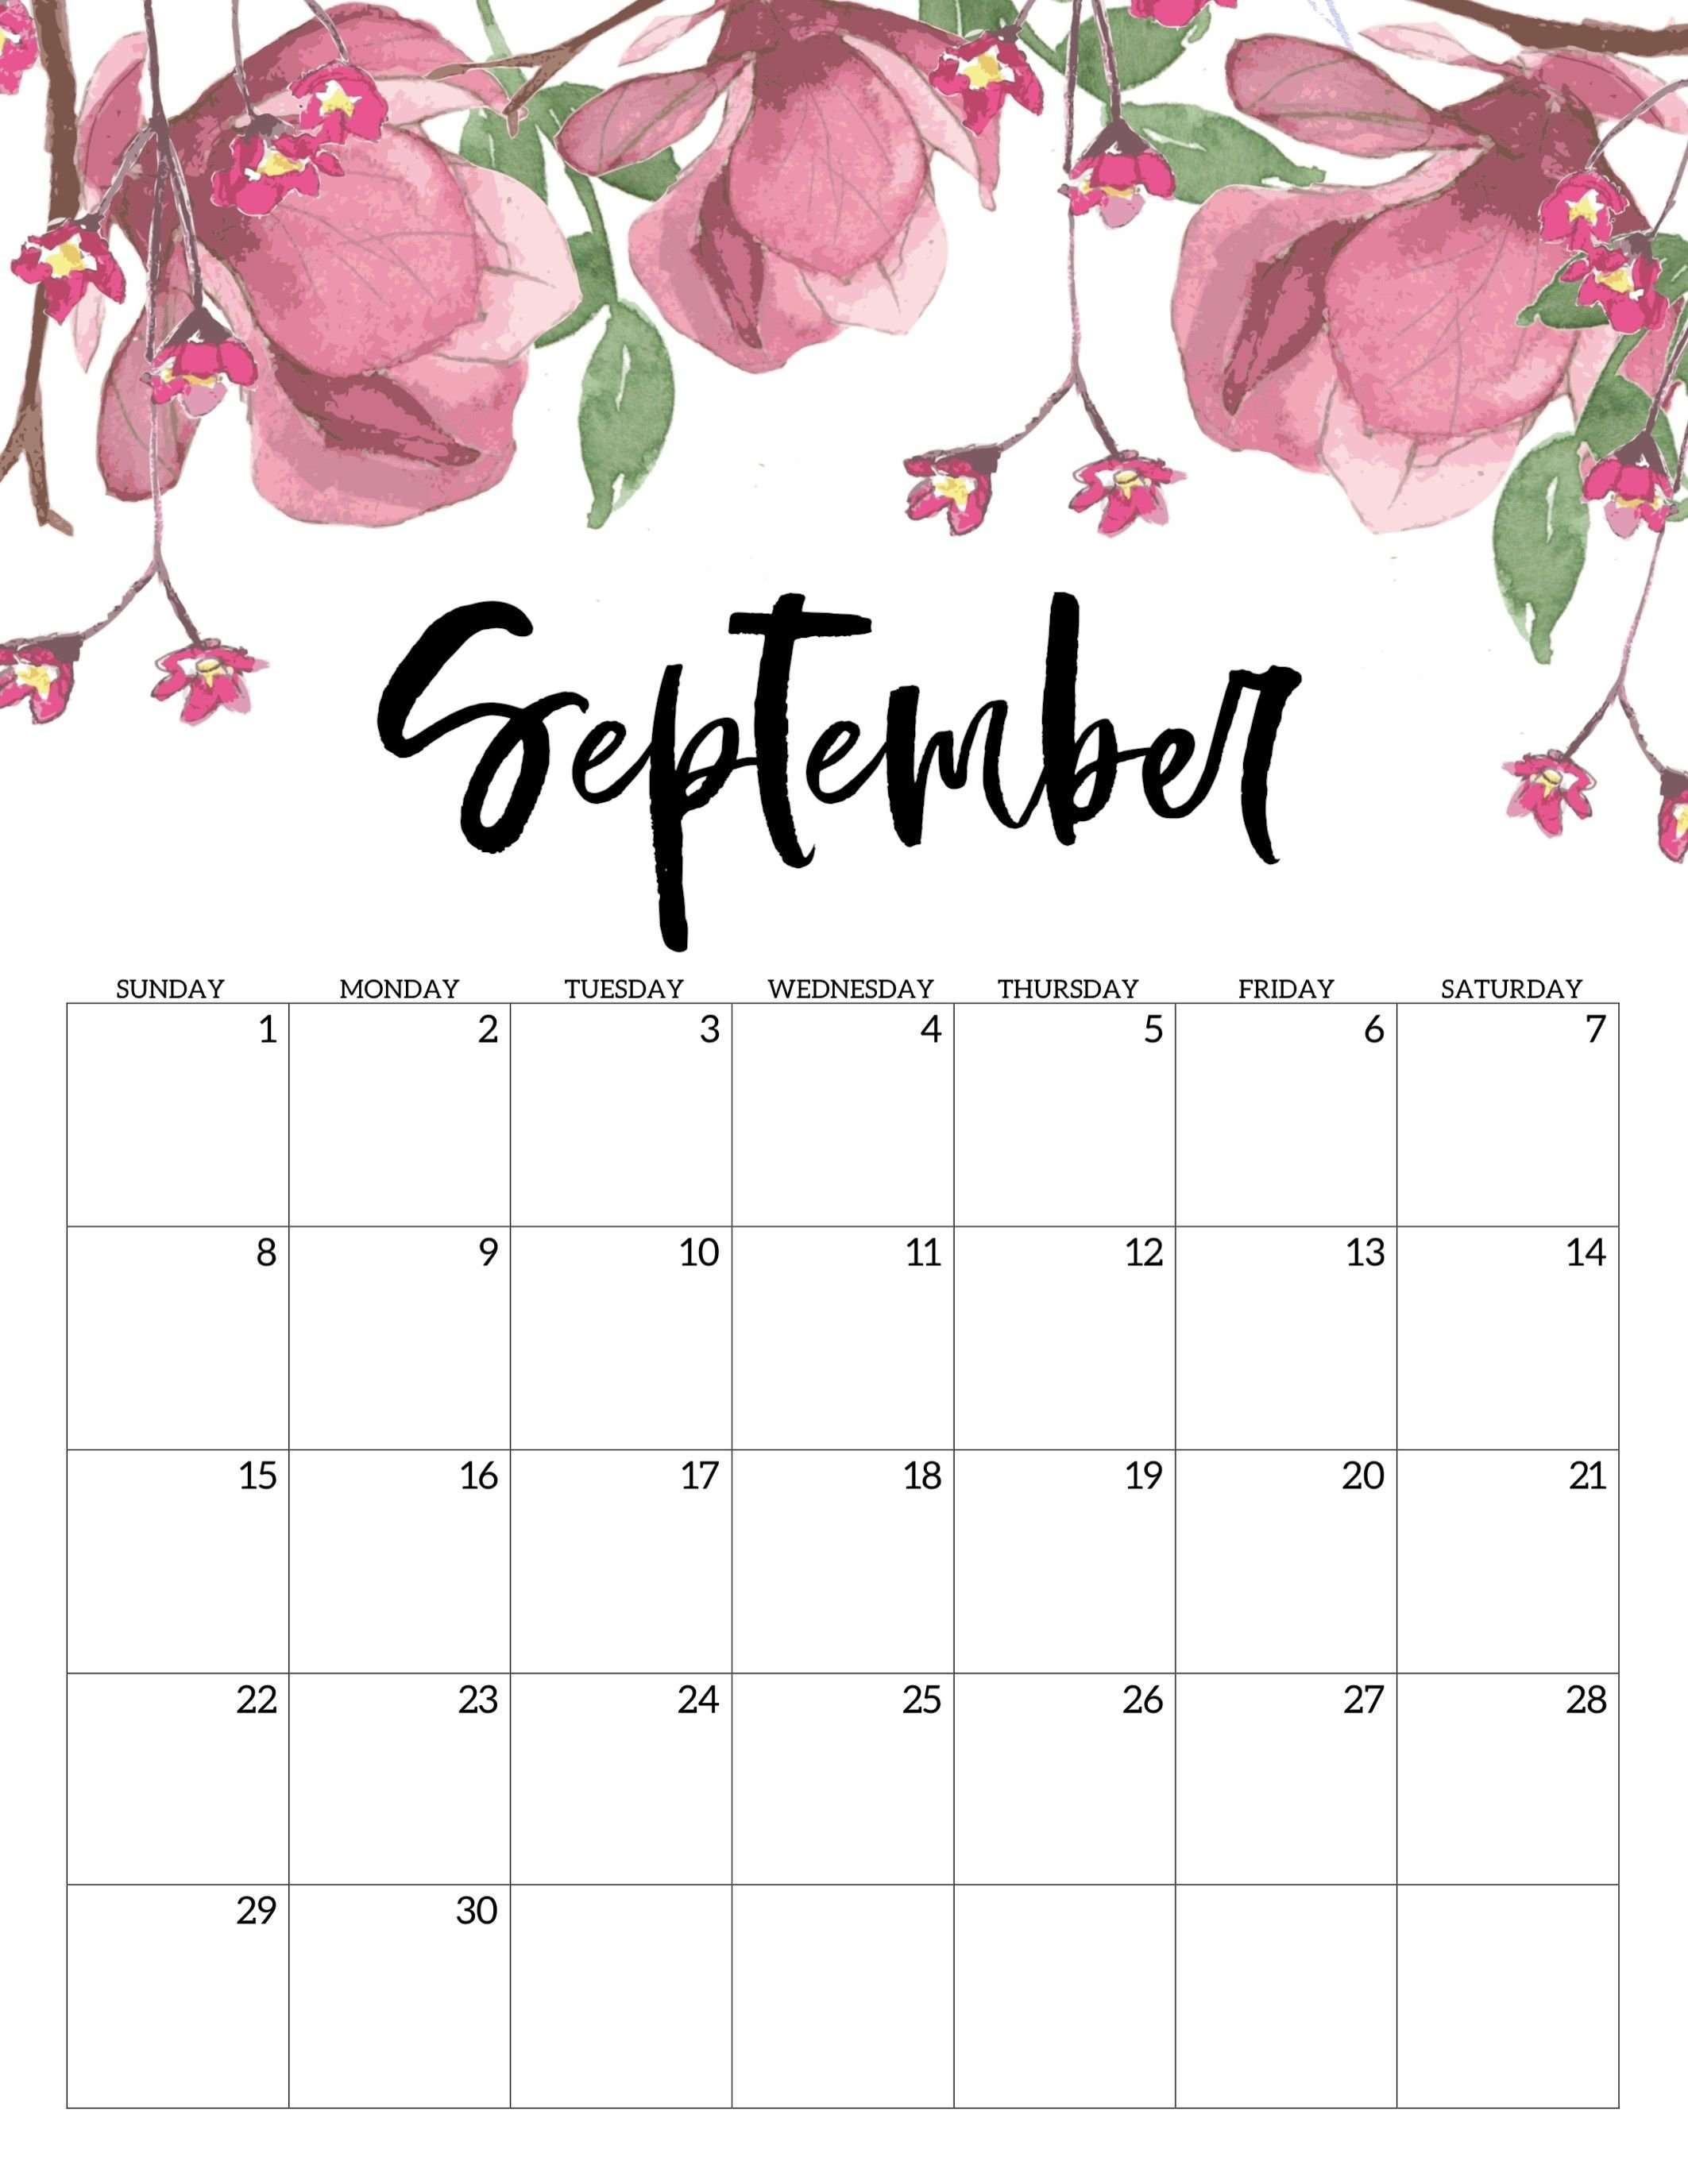 Free Printable Calendar 2019 - Floral - Paper Trail Design 5 X 8 Free Printable Calendars